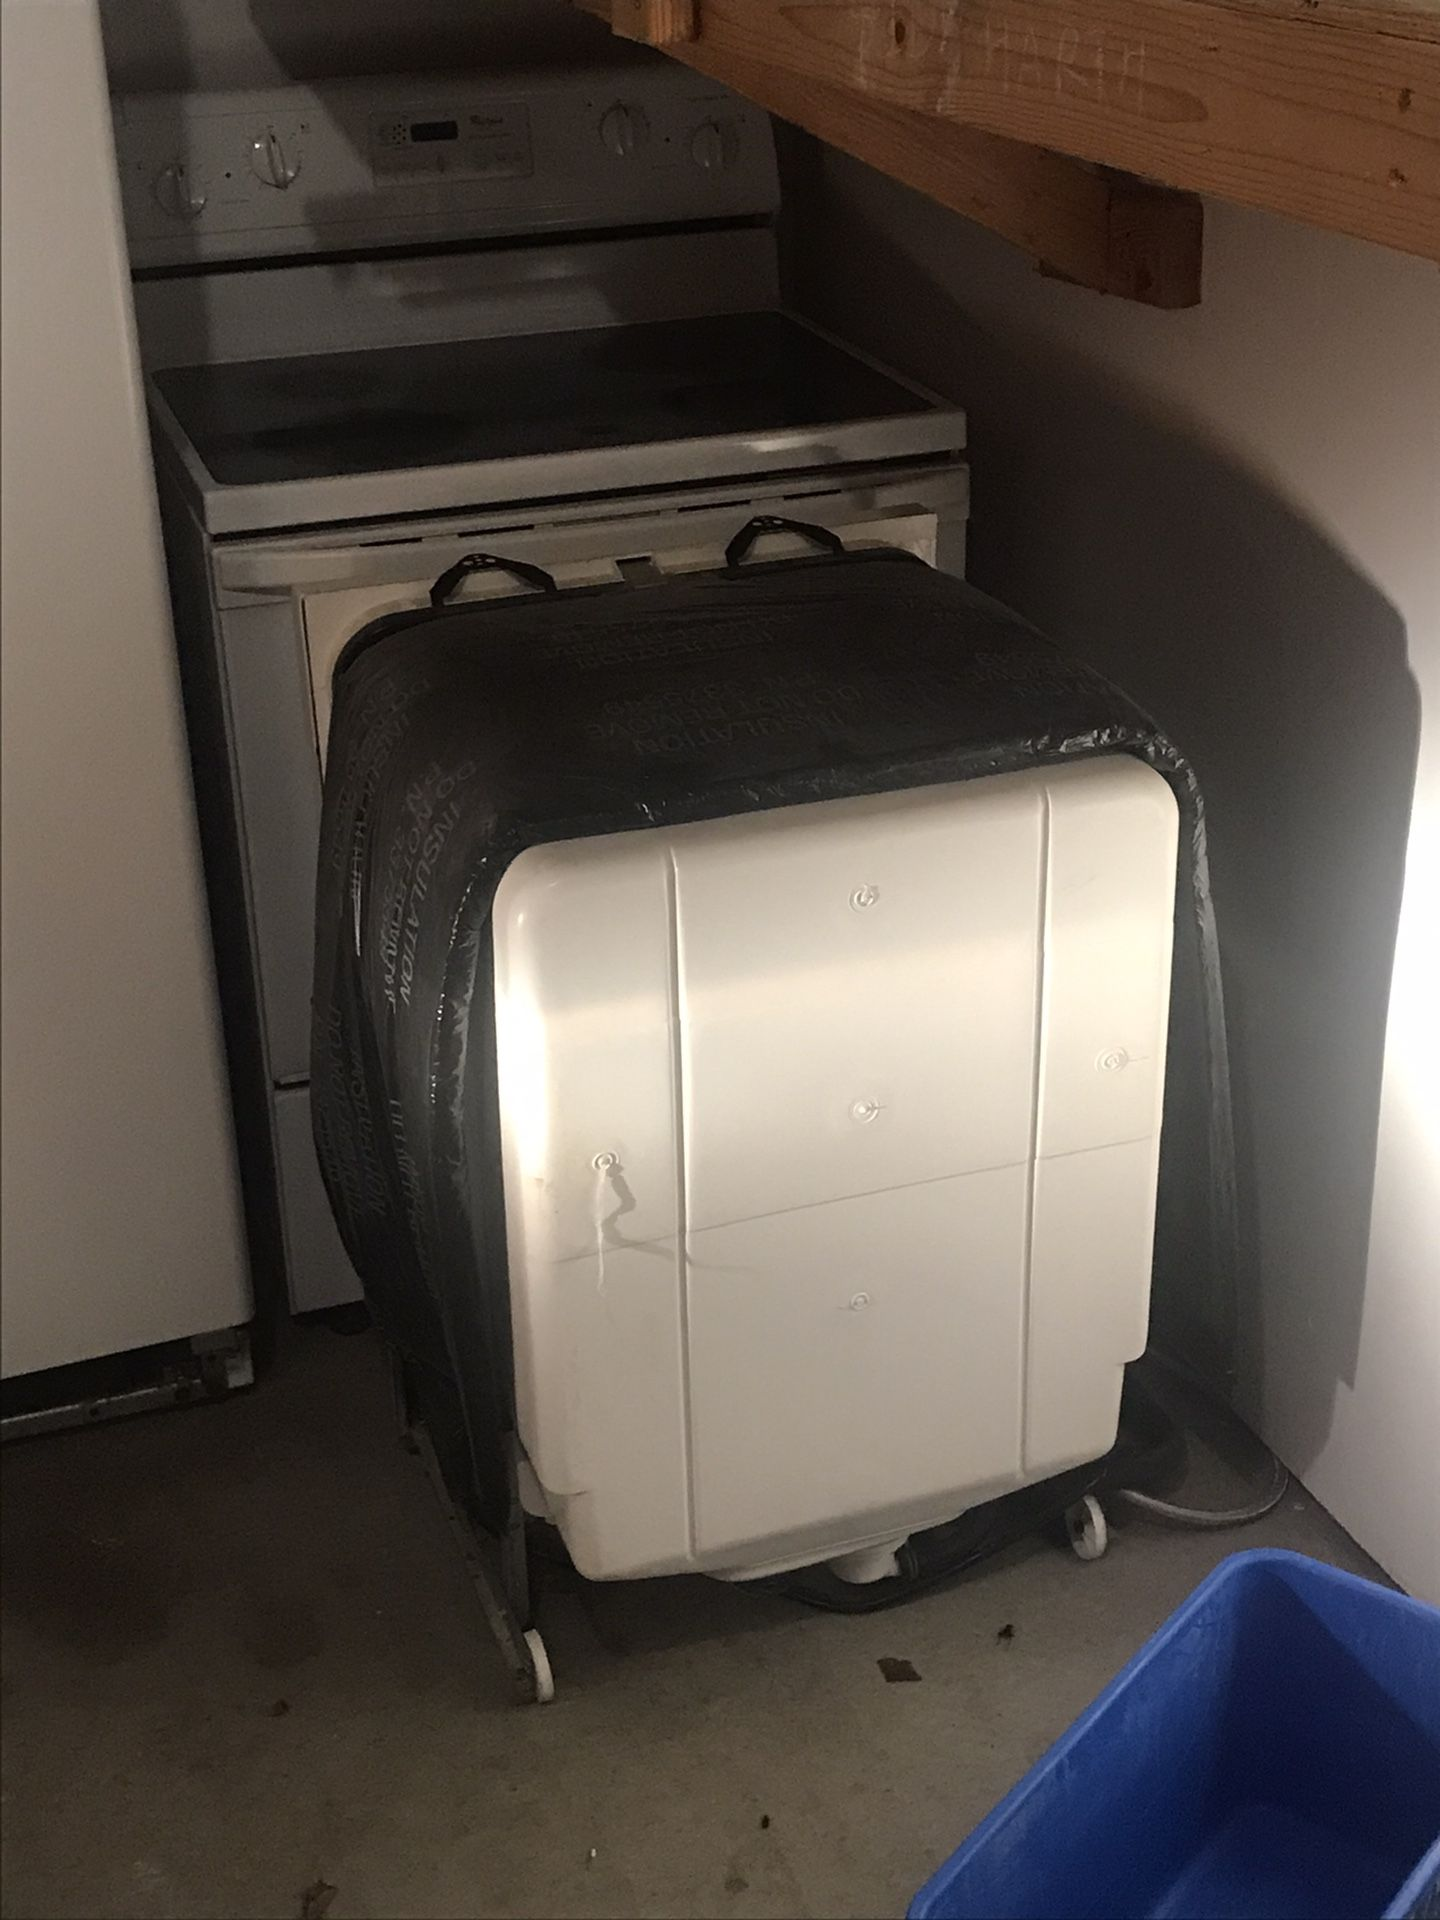 Whirlpool Appliances Everything For Only $550 Or BO